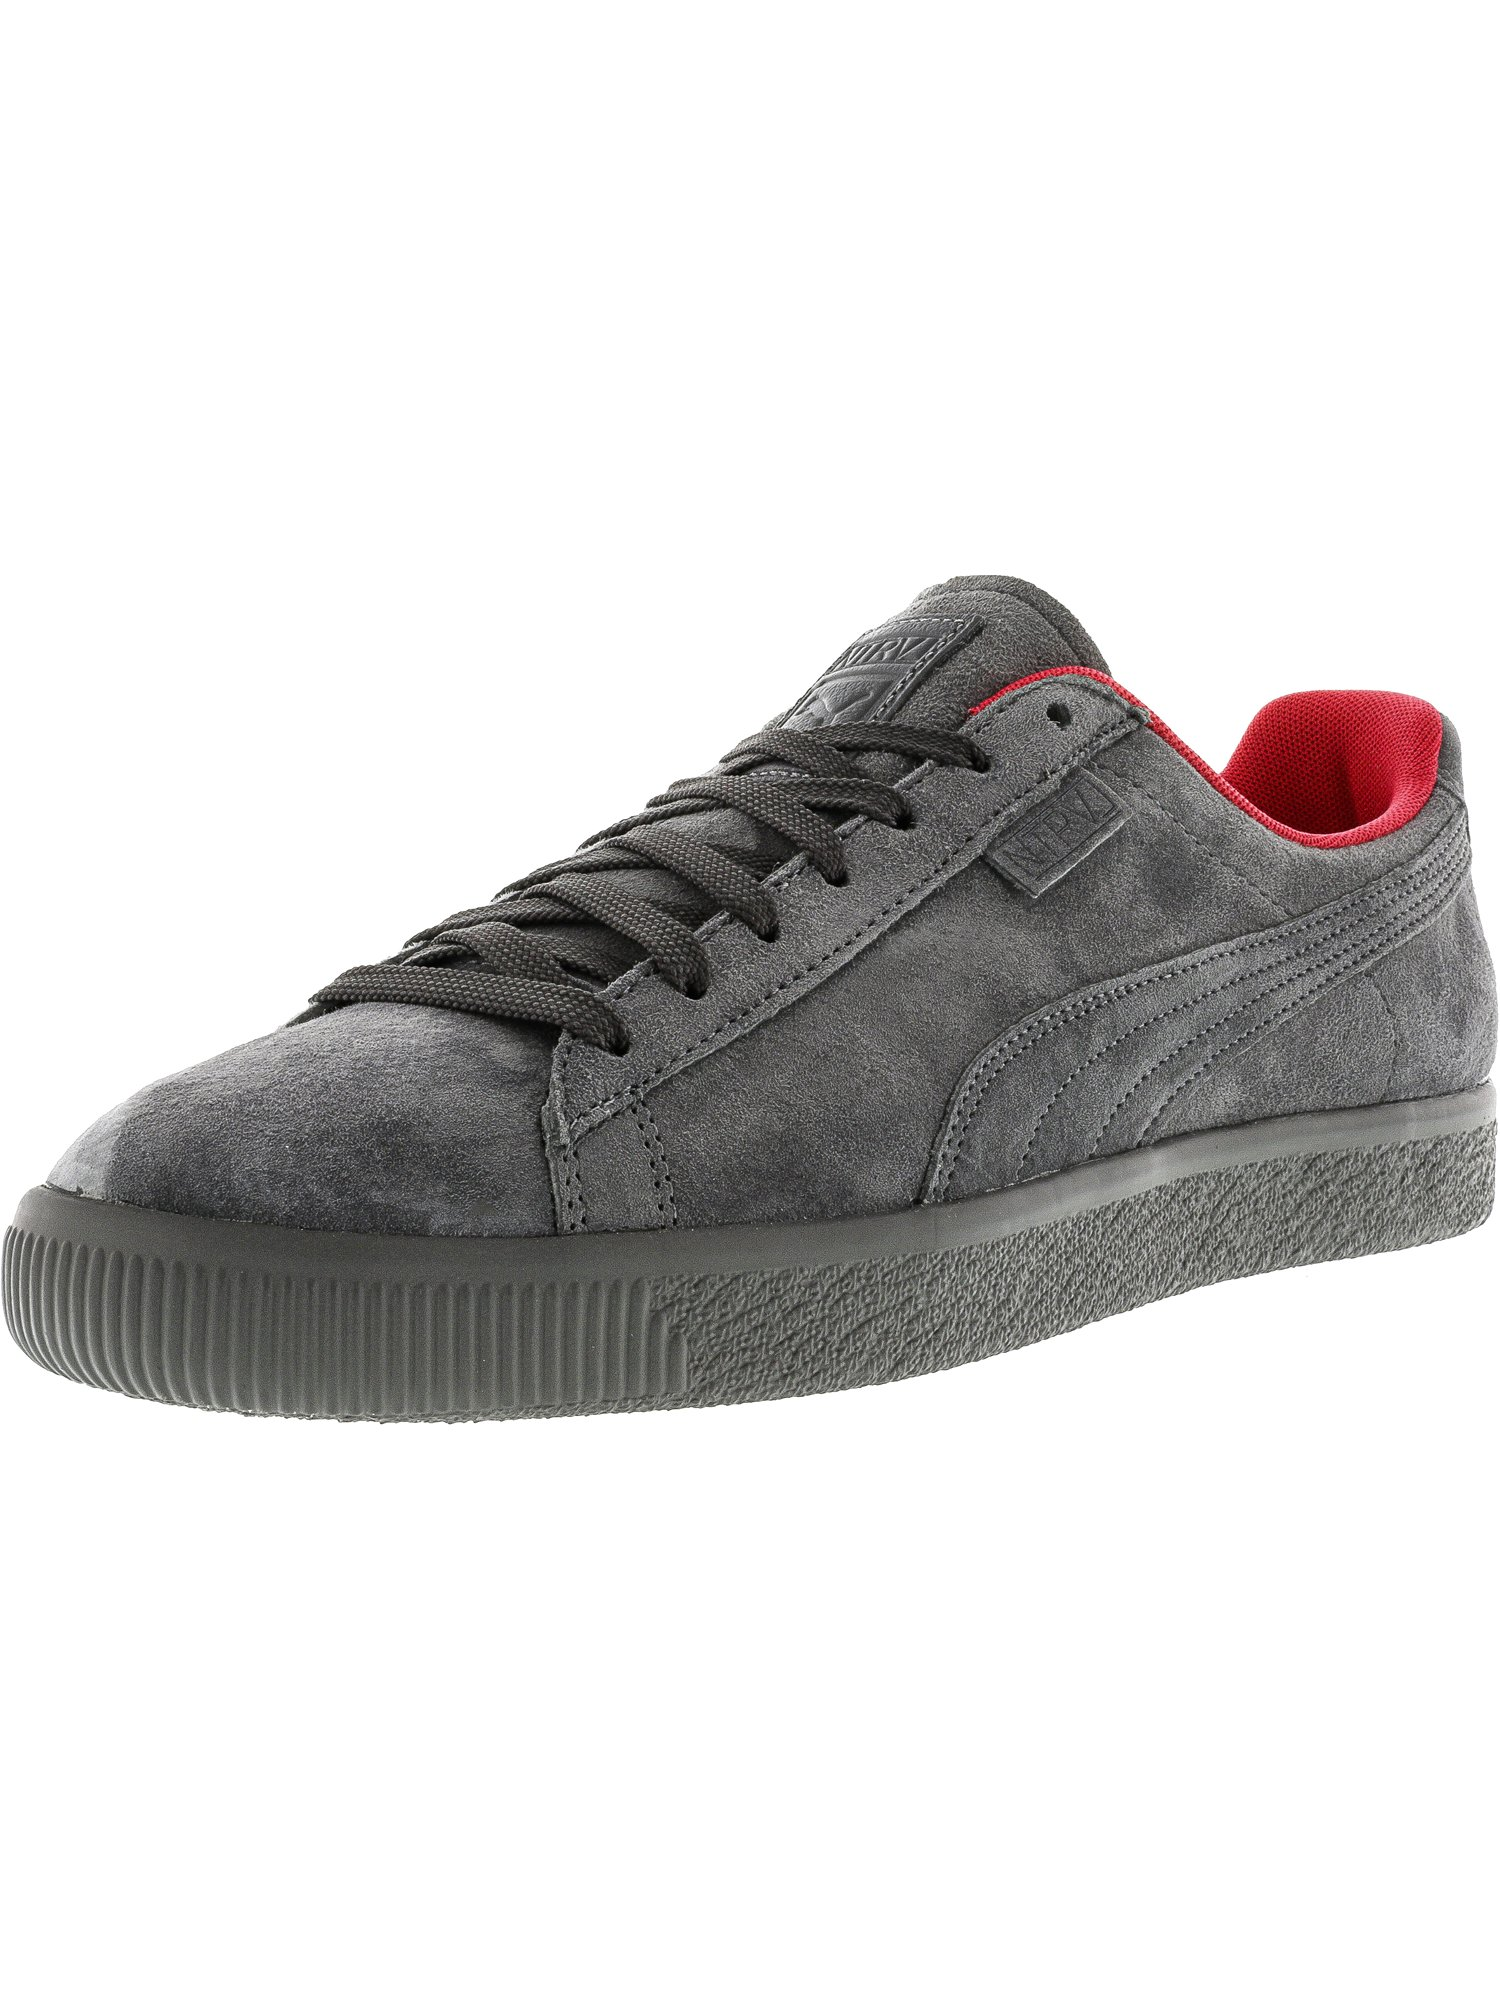 Puma Men's X Staple Clyde Black   Glacier Gray Ankle-High Suede Fashion Sneaker 10.5M by Puma